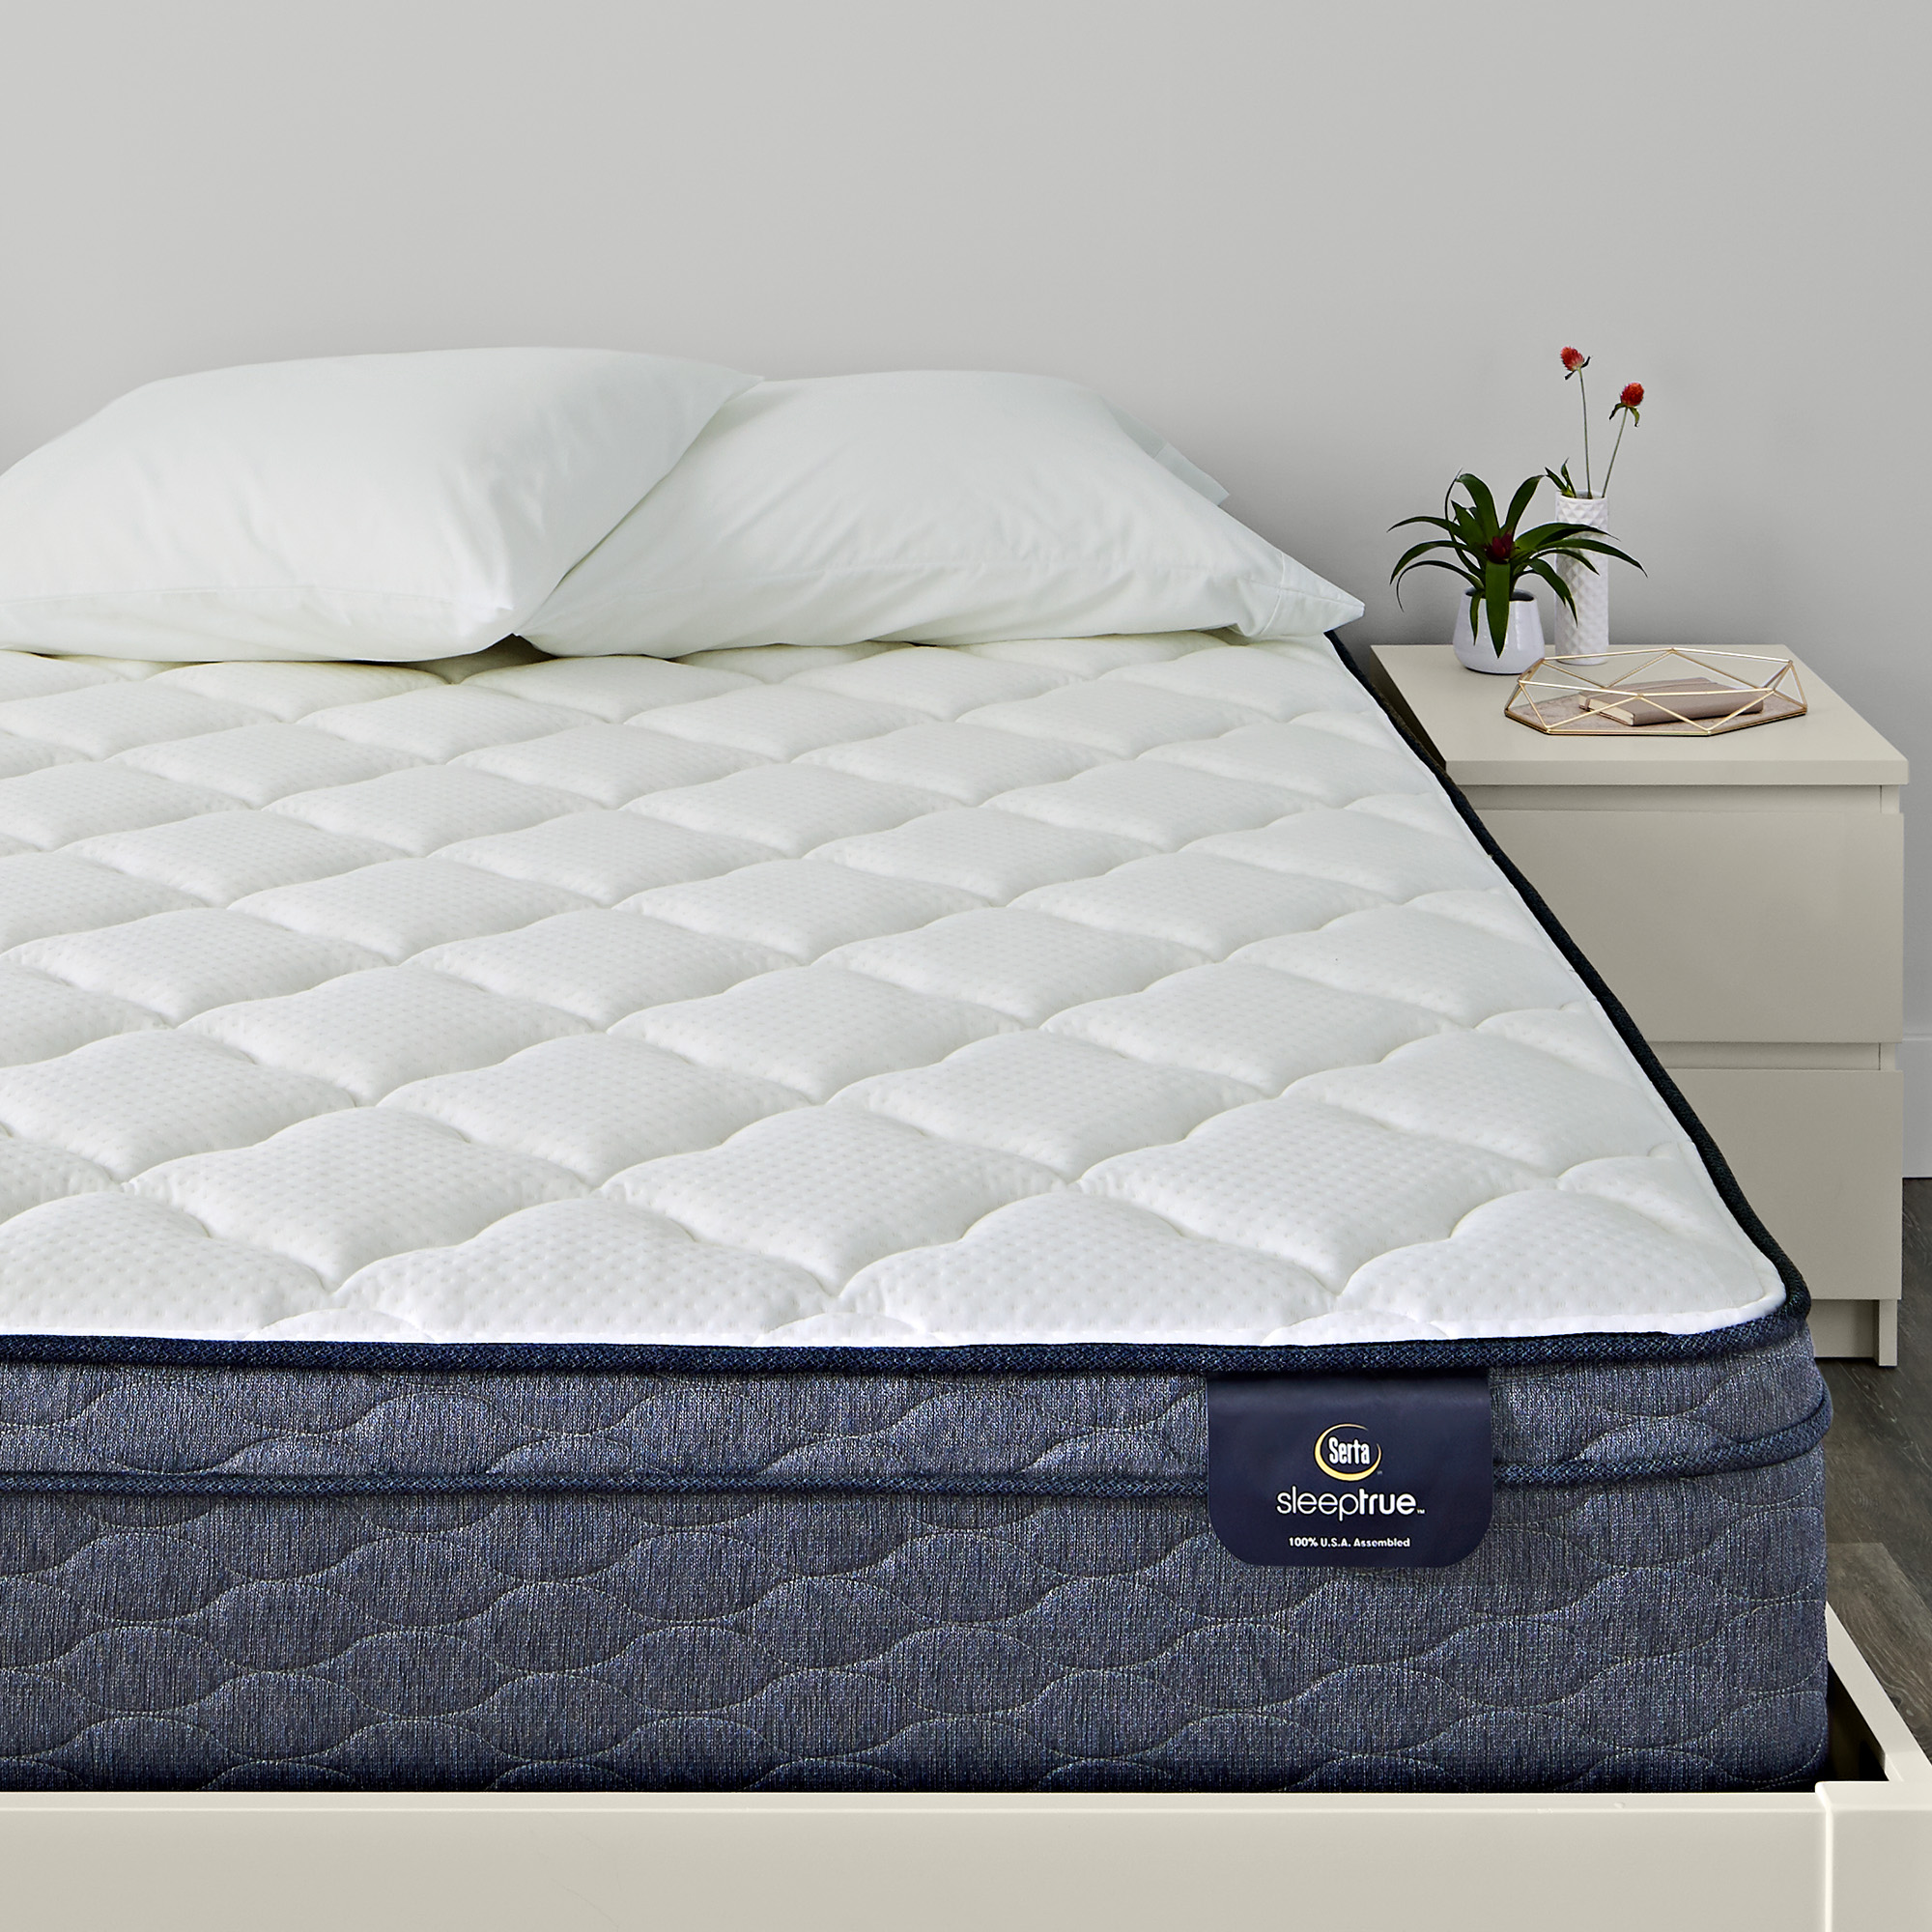 Malloy Eurotop Plush Queen Mattress